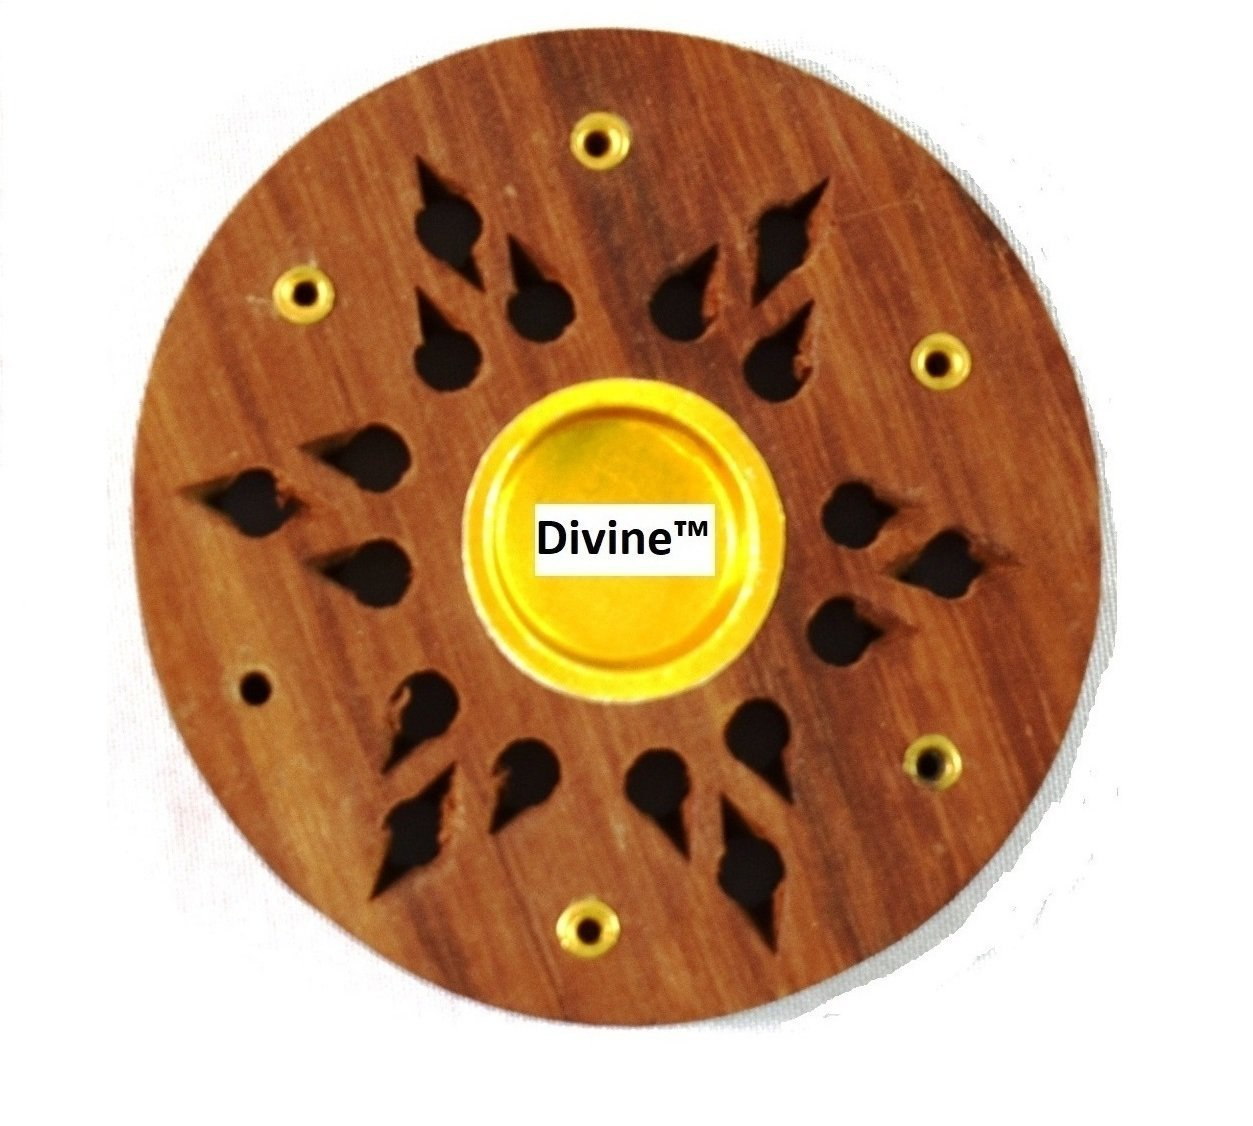 Divine Incense Holder Free With Golden Pearl Metallic Coloured Fragranced Premium Incense Sticks Agarbatti 1 KG Pack | 10 Packs of 100 Grams | Export Quality by Divine